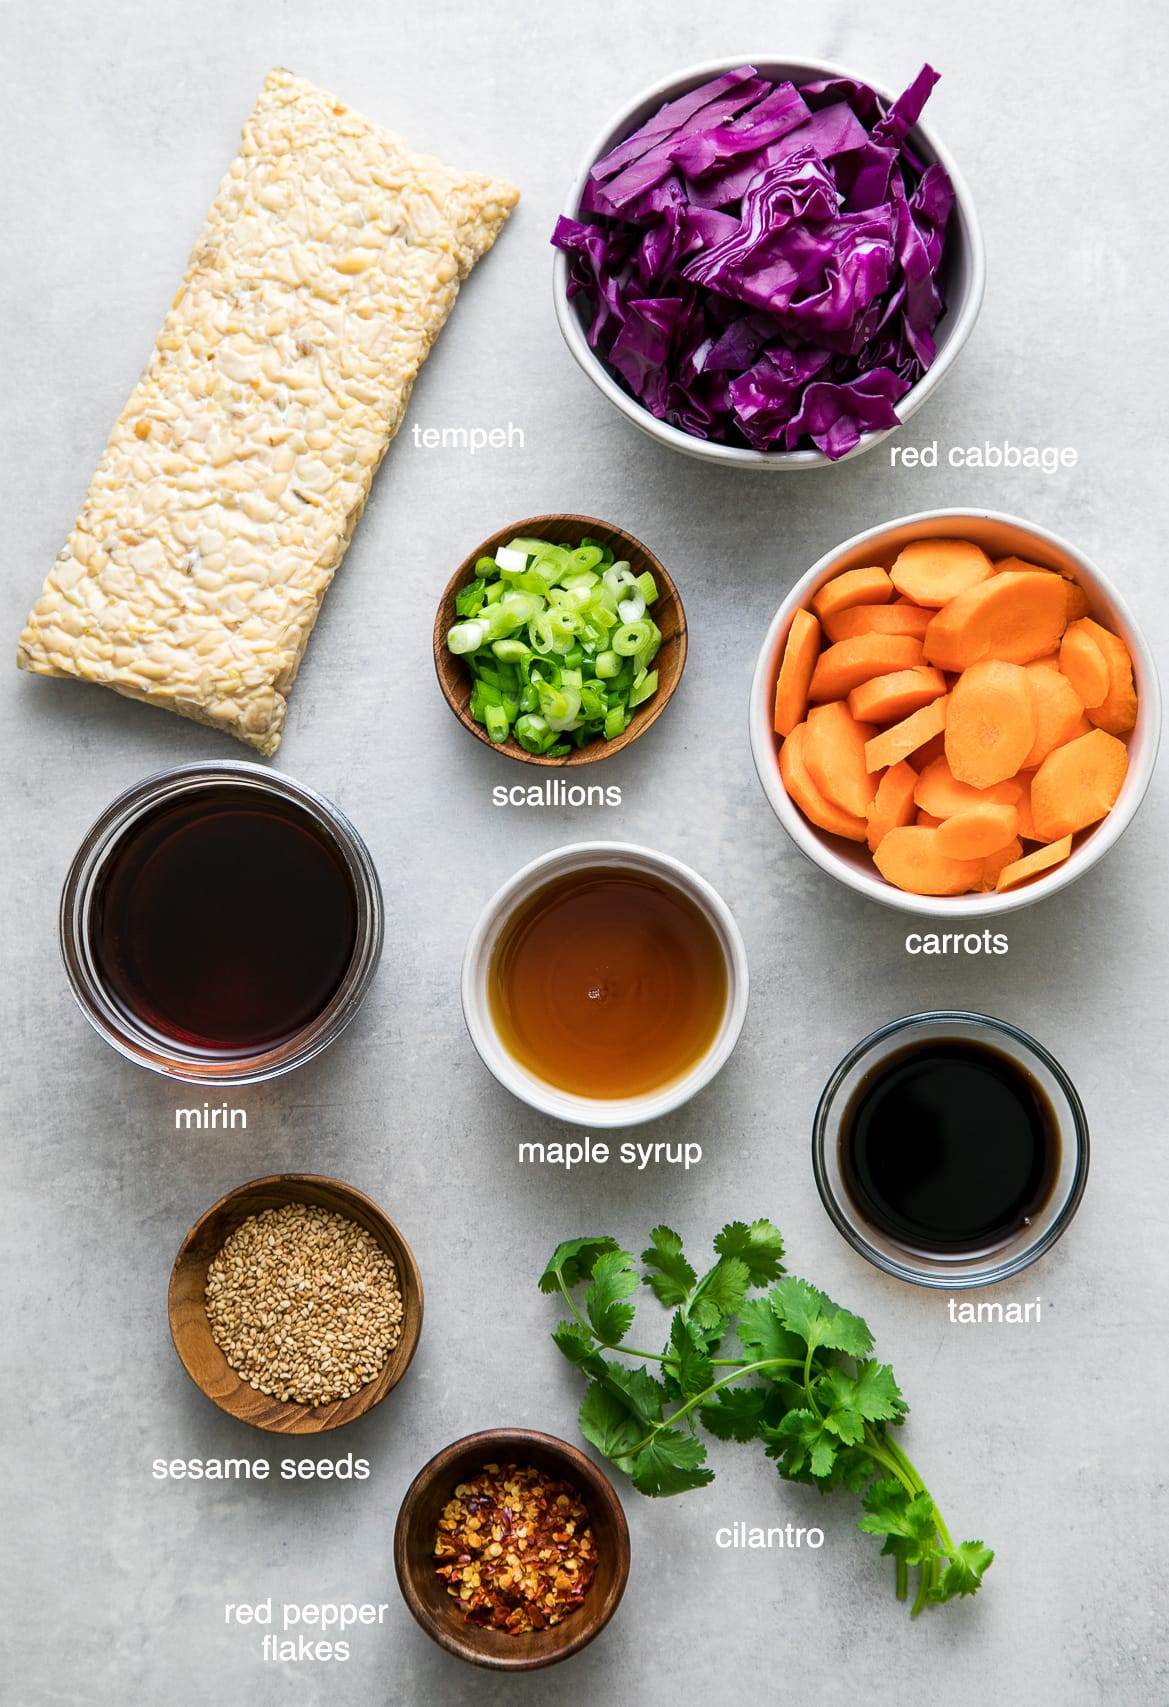 top down view of ingredients used to make maple mirin tempeh stir fry recipe.